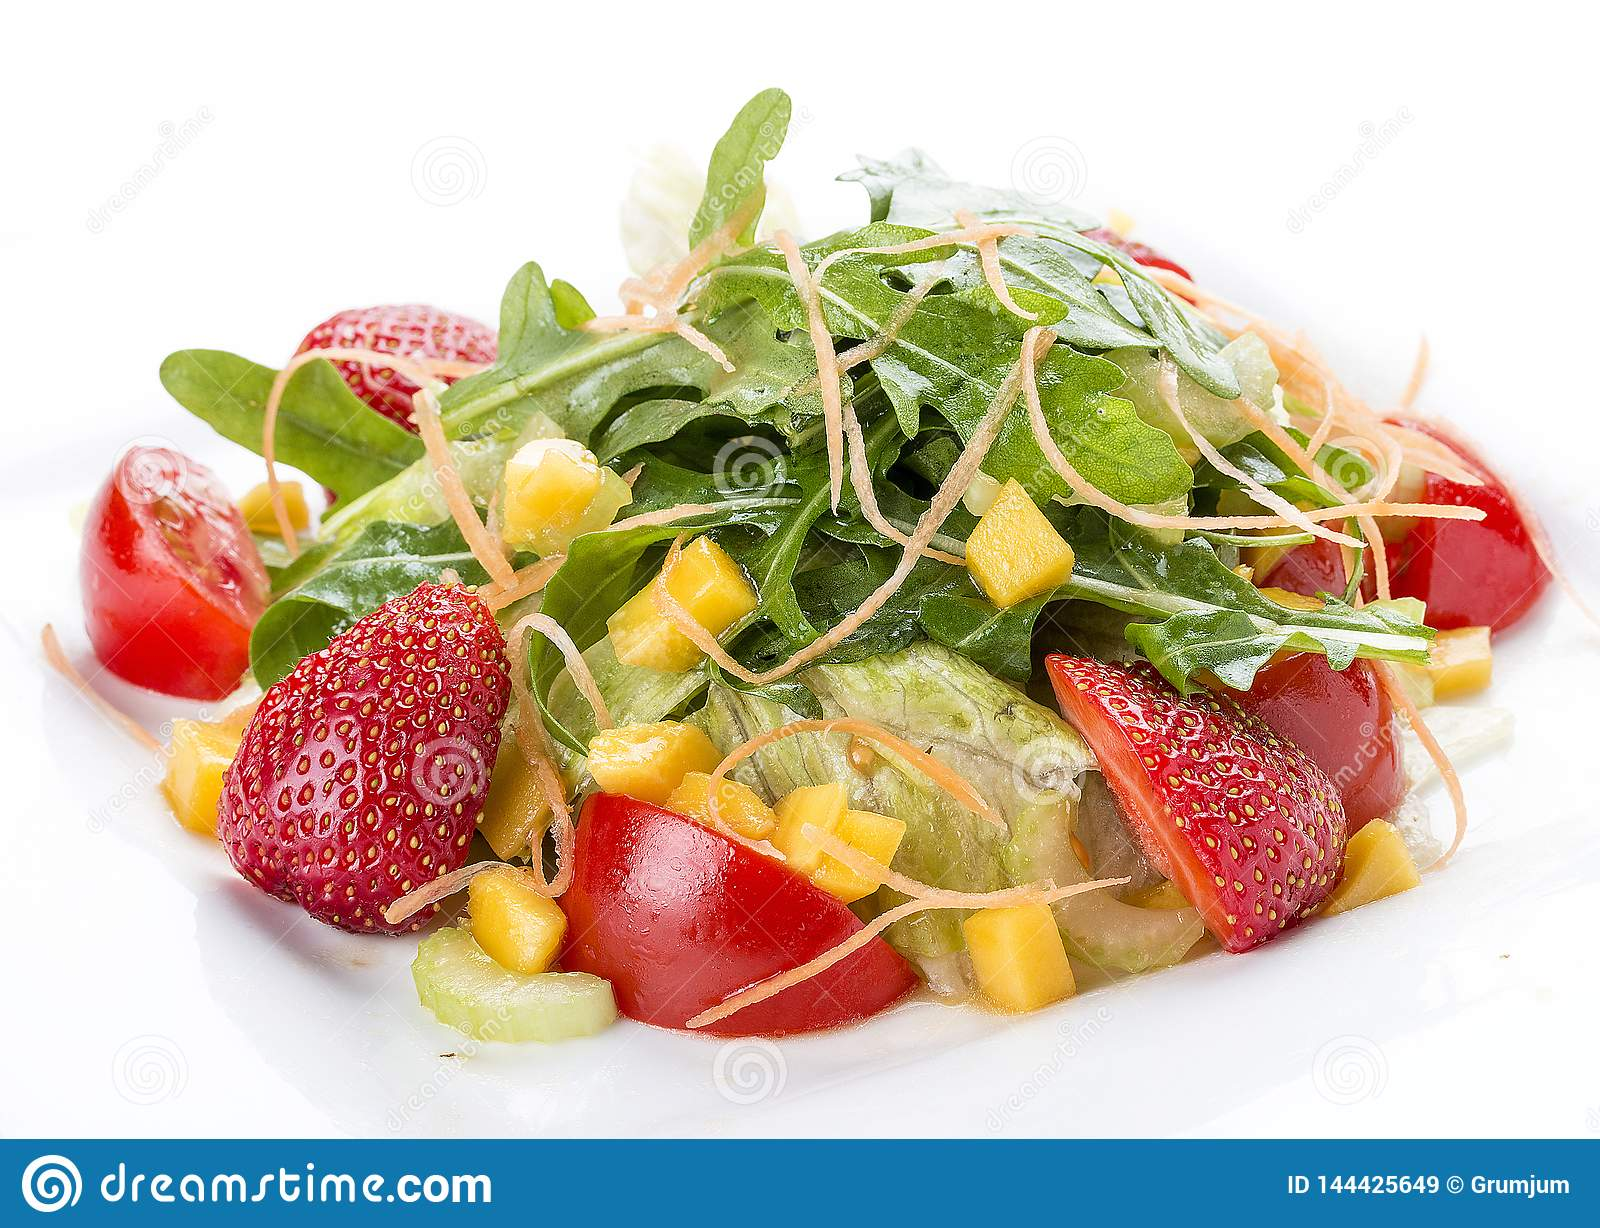 Summer salad with strawberries and tomatoes. On a white plate